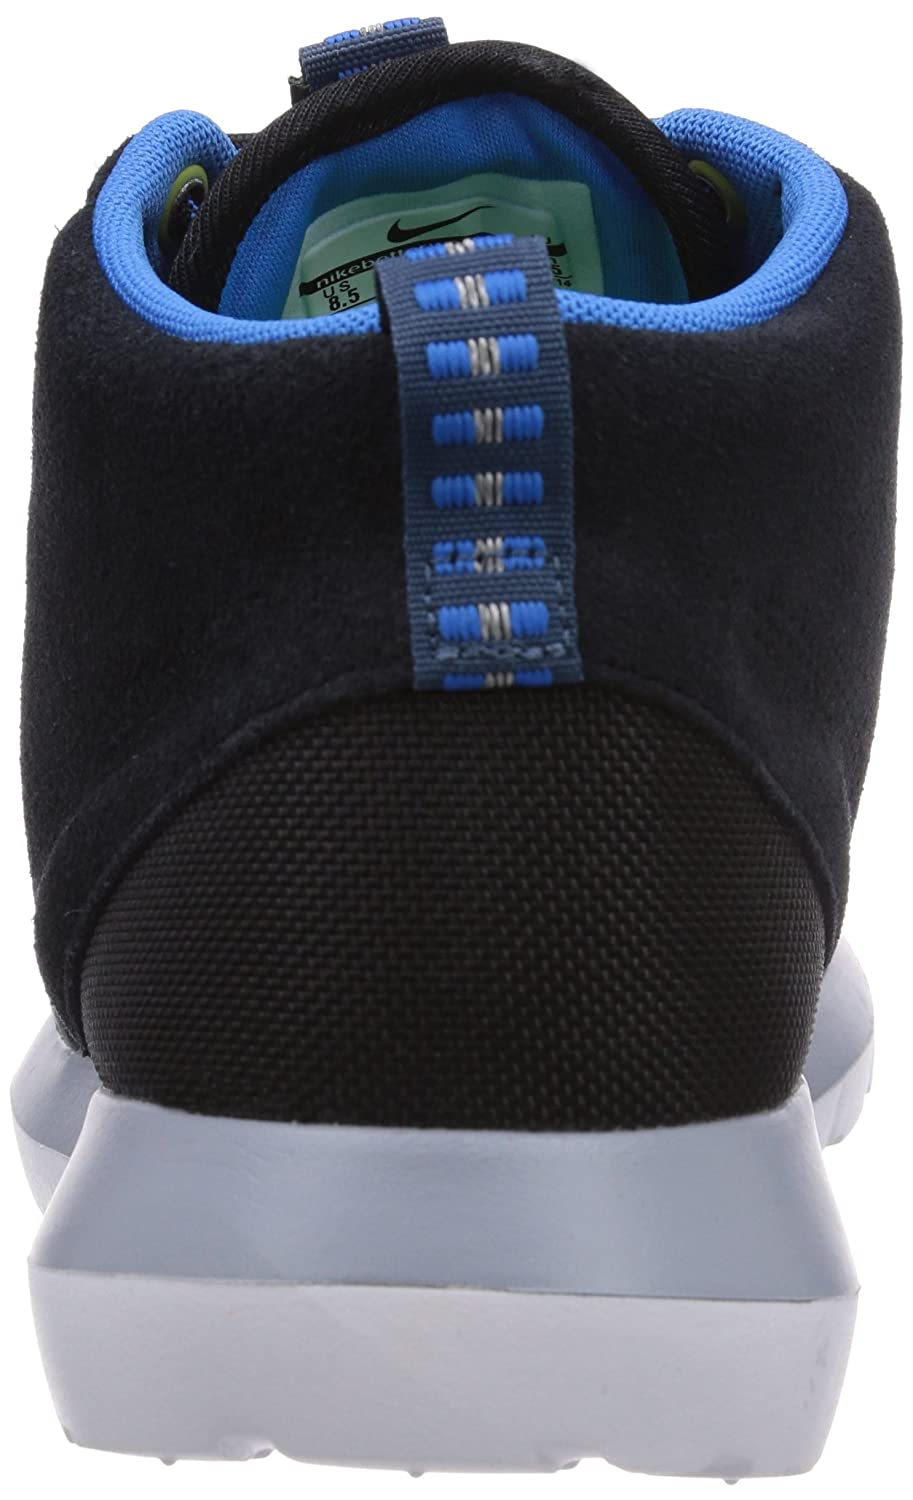 vdzei Nike Roshe Run Sneakerboot, Men\'s Trainers: Amazon.co.uk: Shoes &